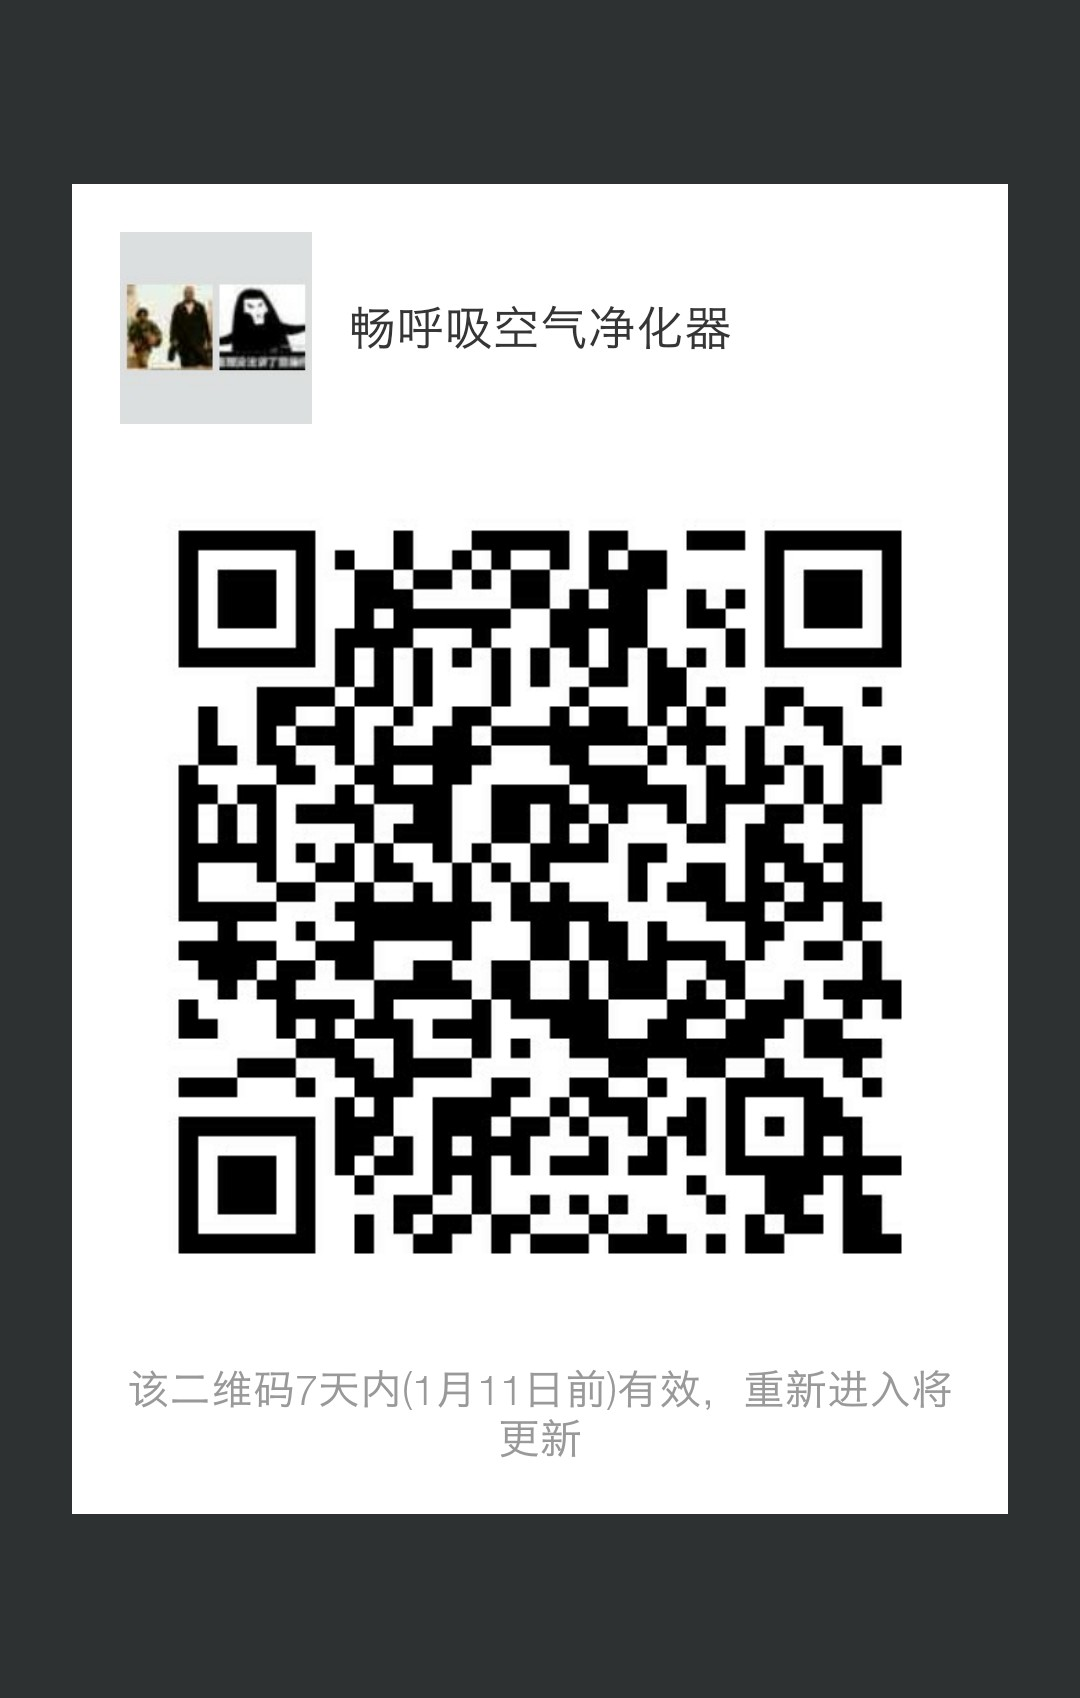 mmqrcode1515079011513.png